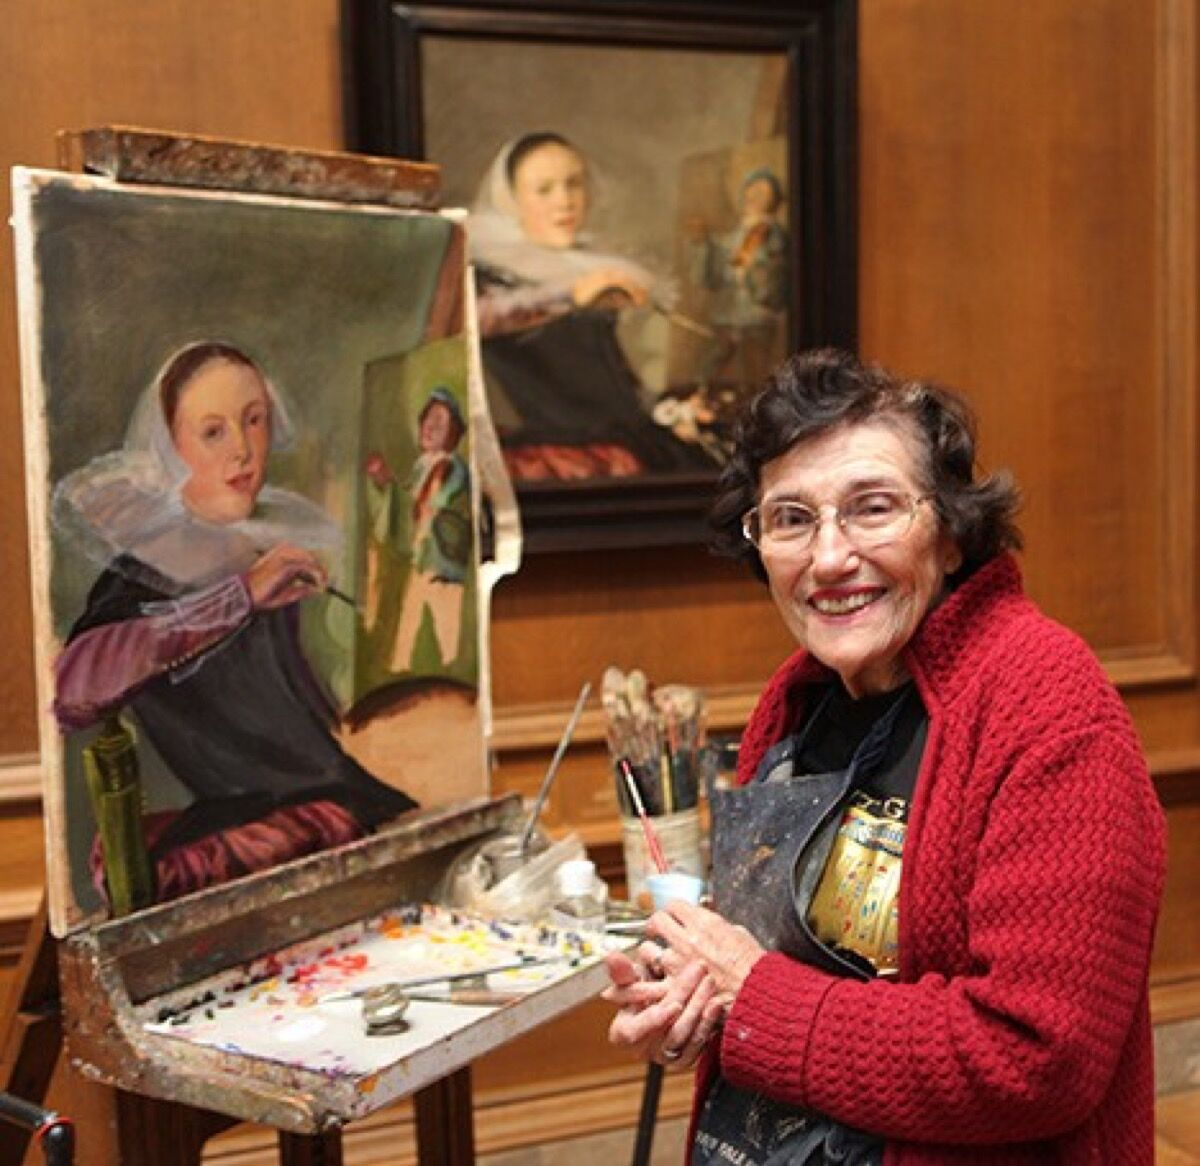 Vivian Parke painting at the National Gallery of Art, Washington, D.C. Courtesy of the National Gallery of Art, Washington, D.C.